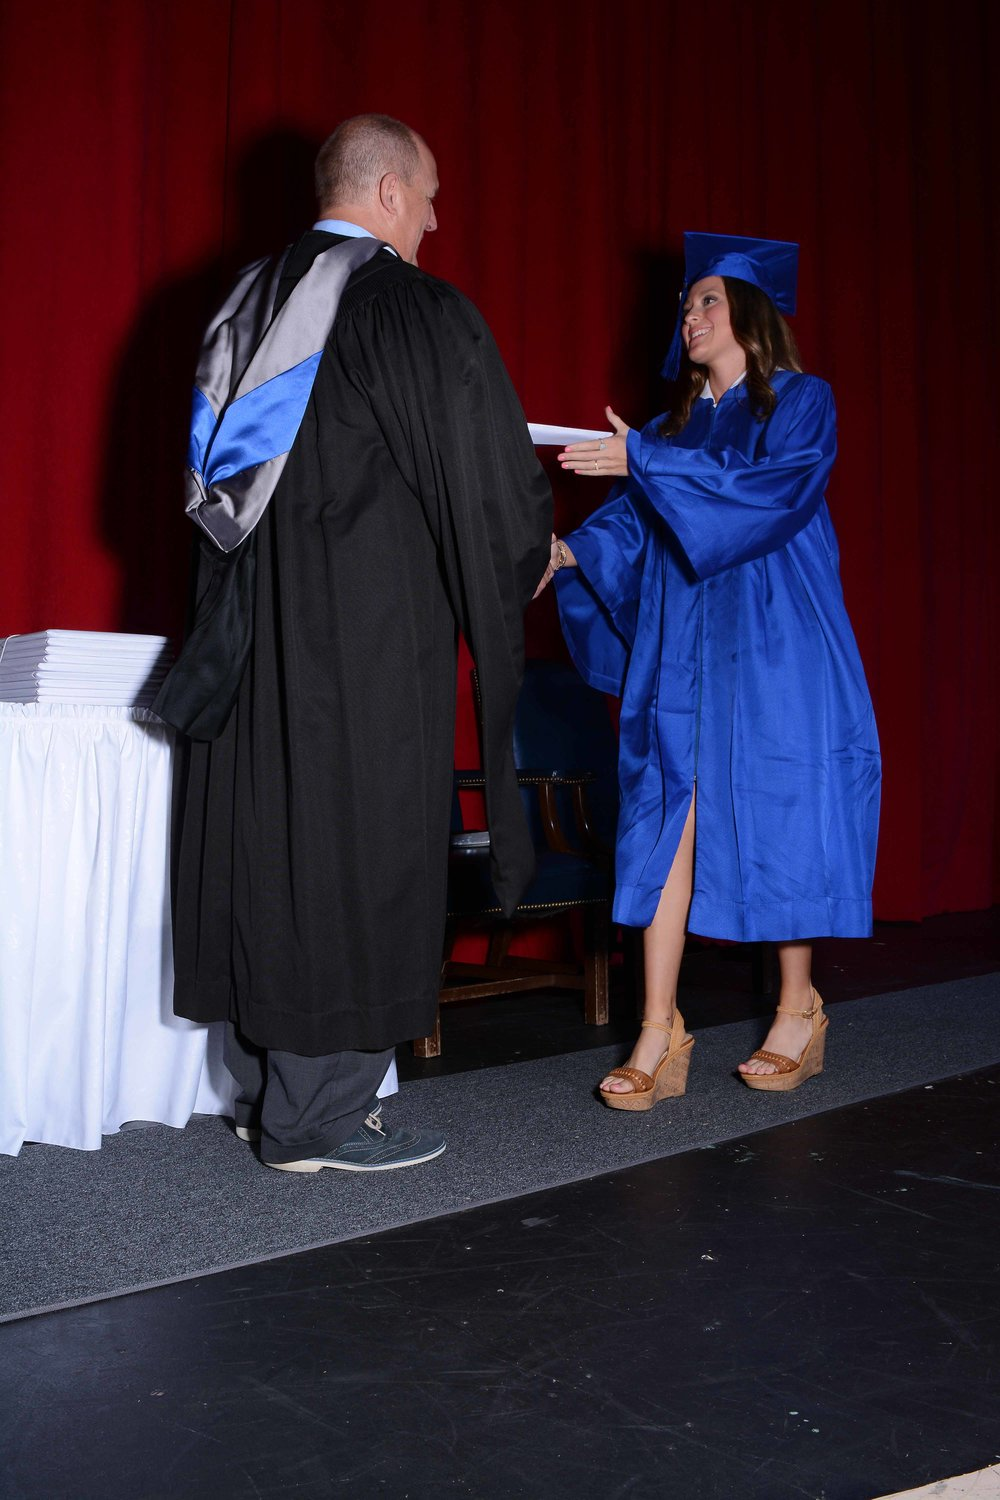 May14 Commencement104.jpg